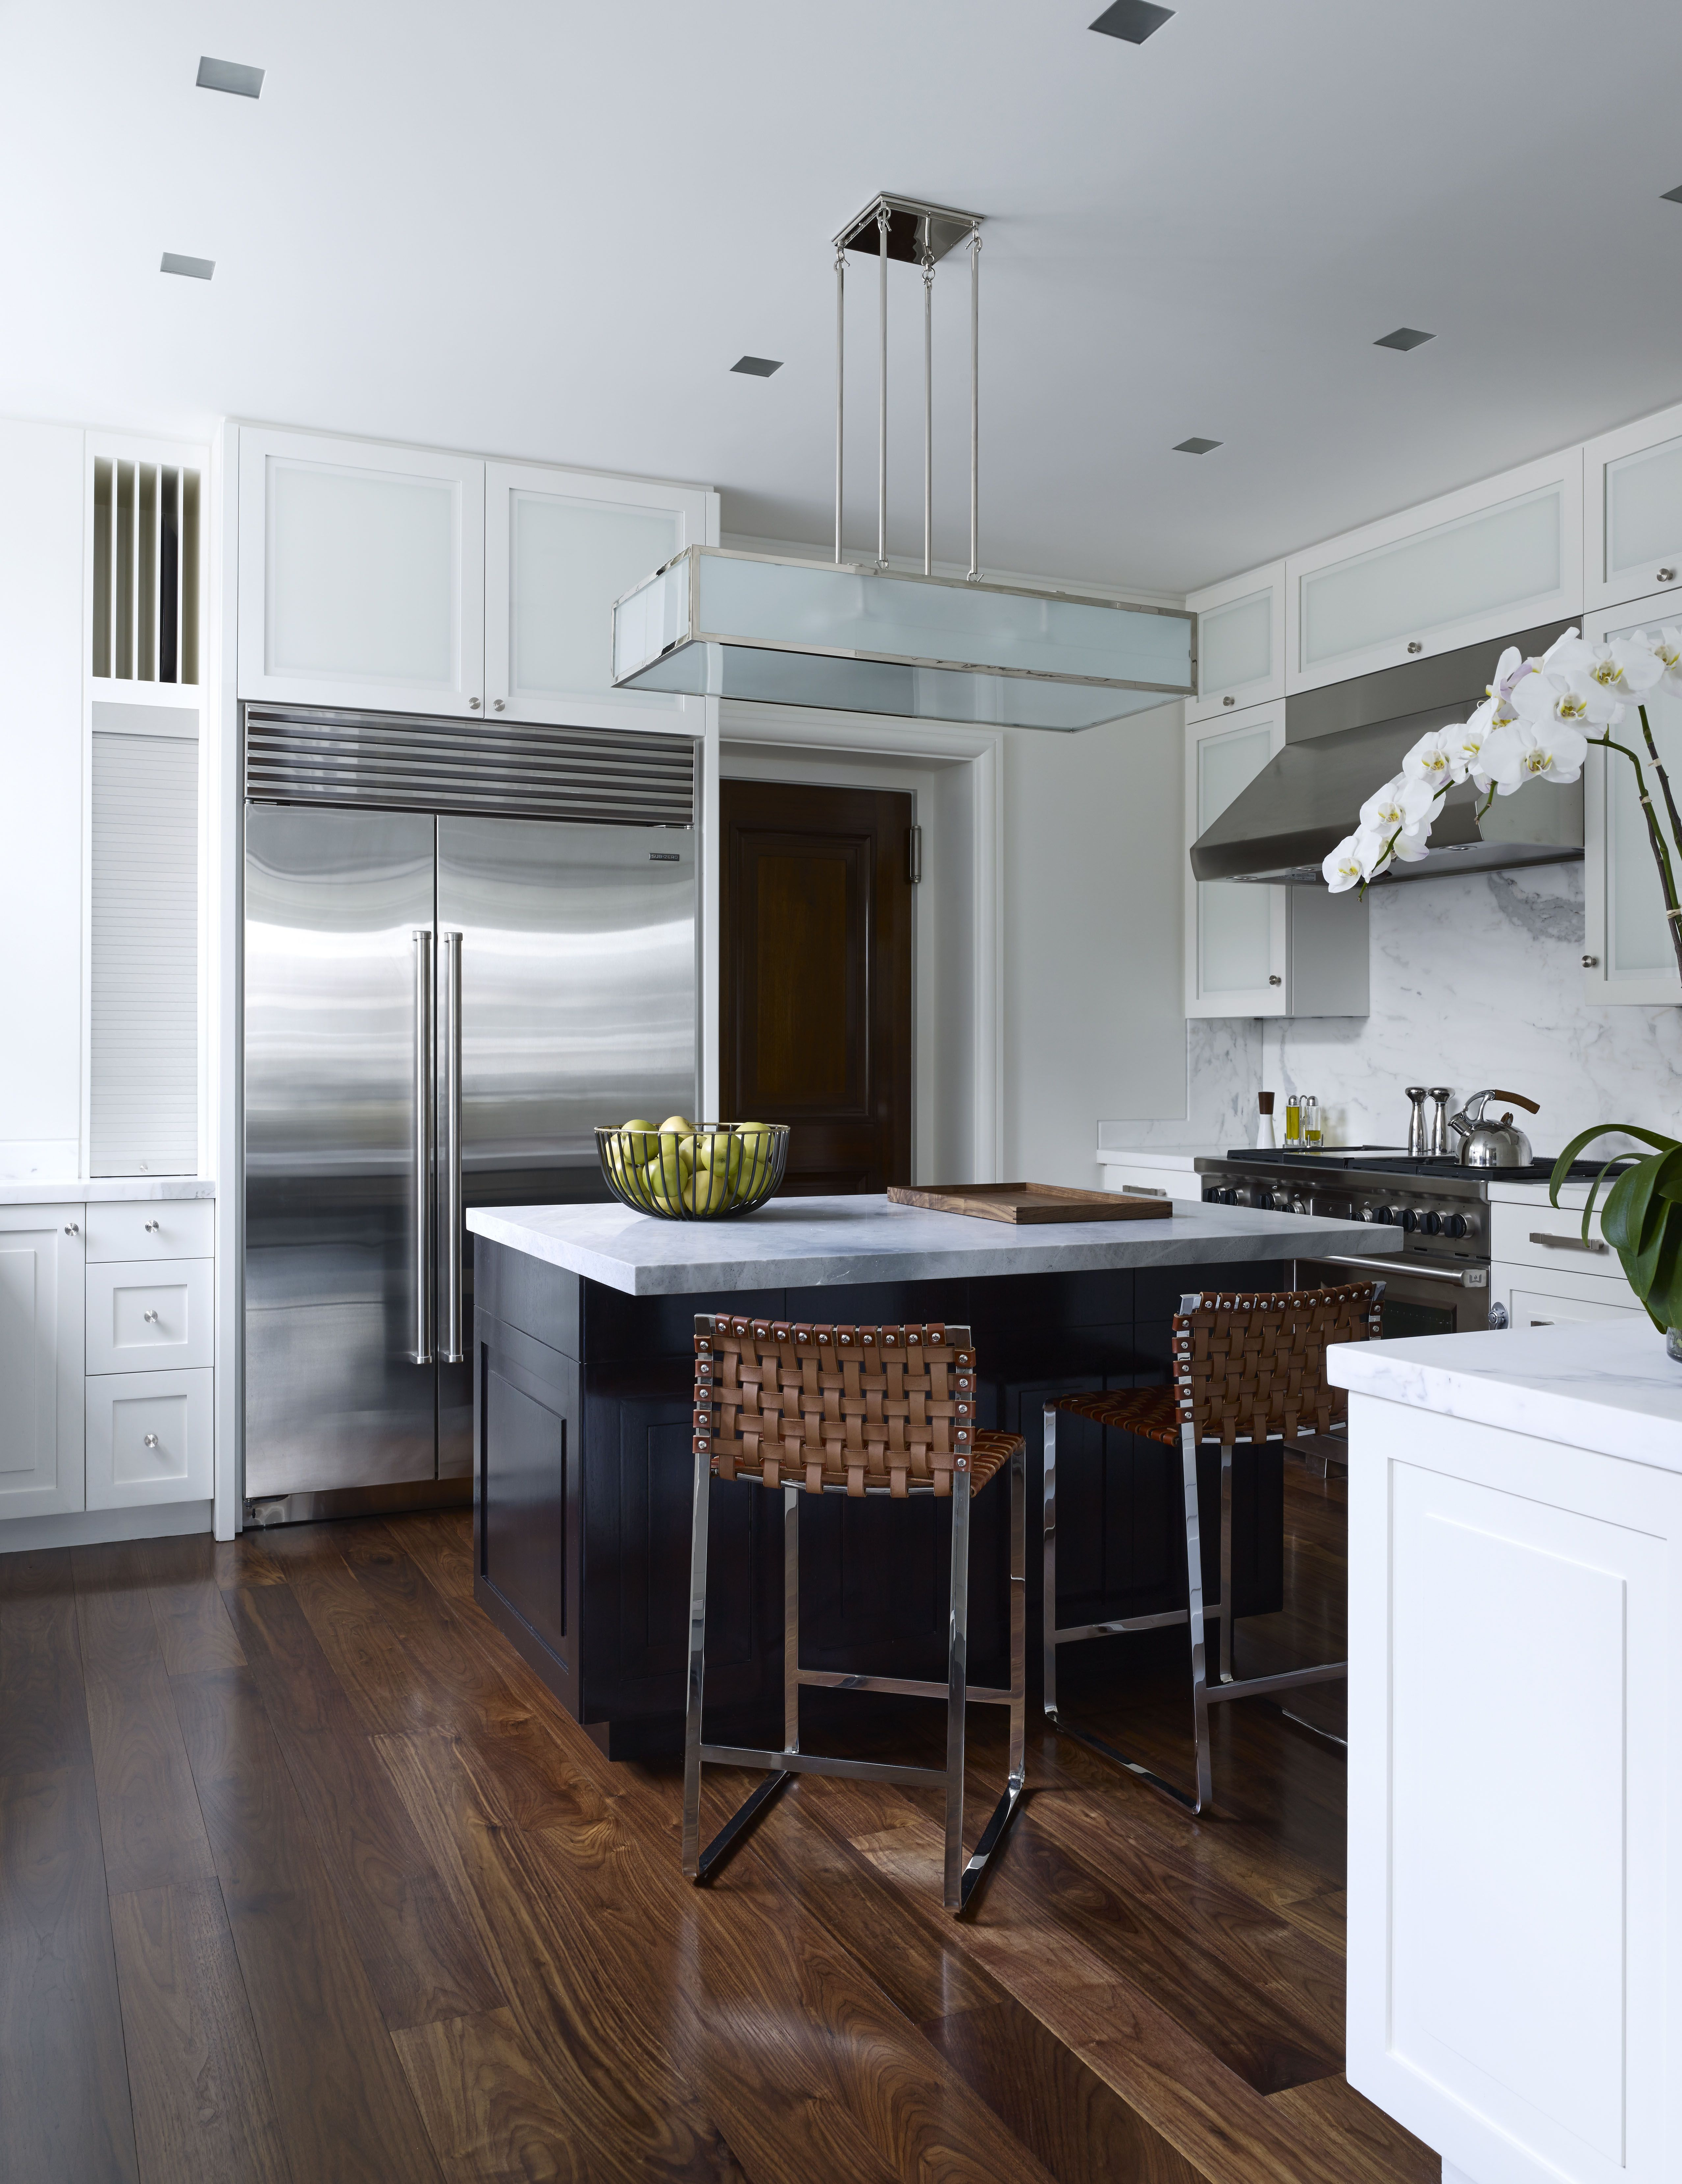 A functional kitchen serves as a family gathering space with woven